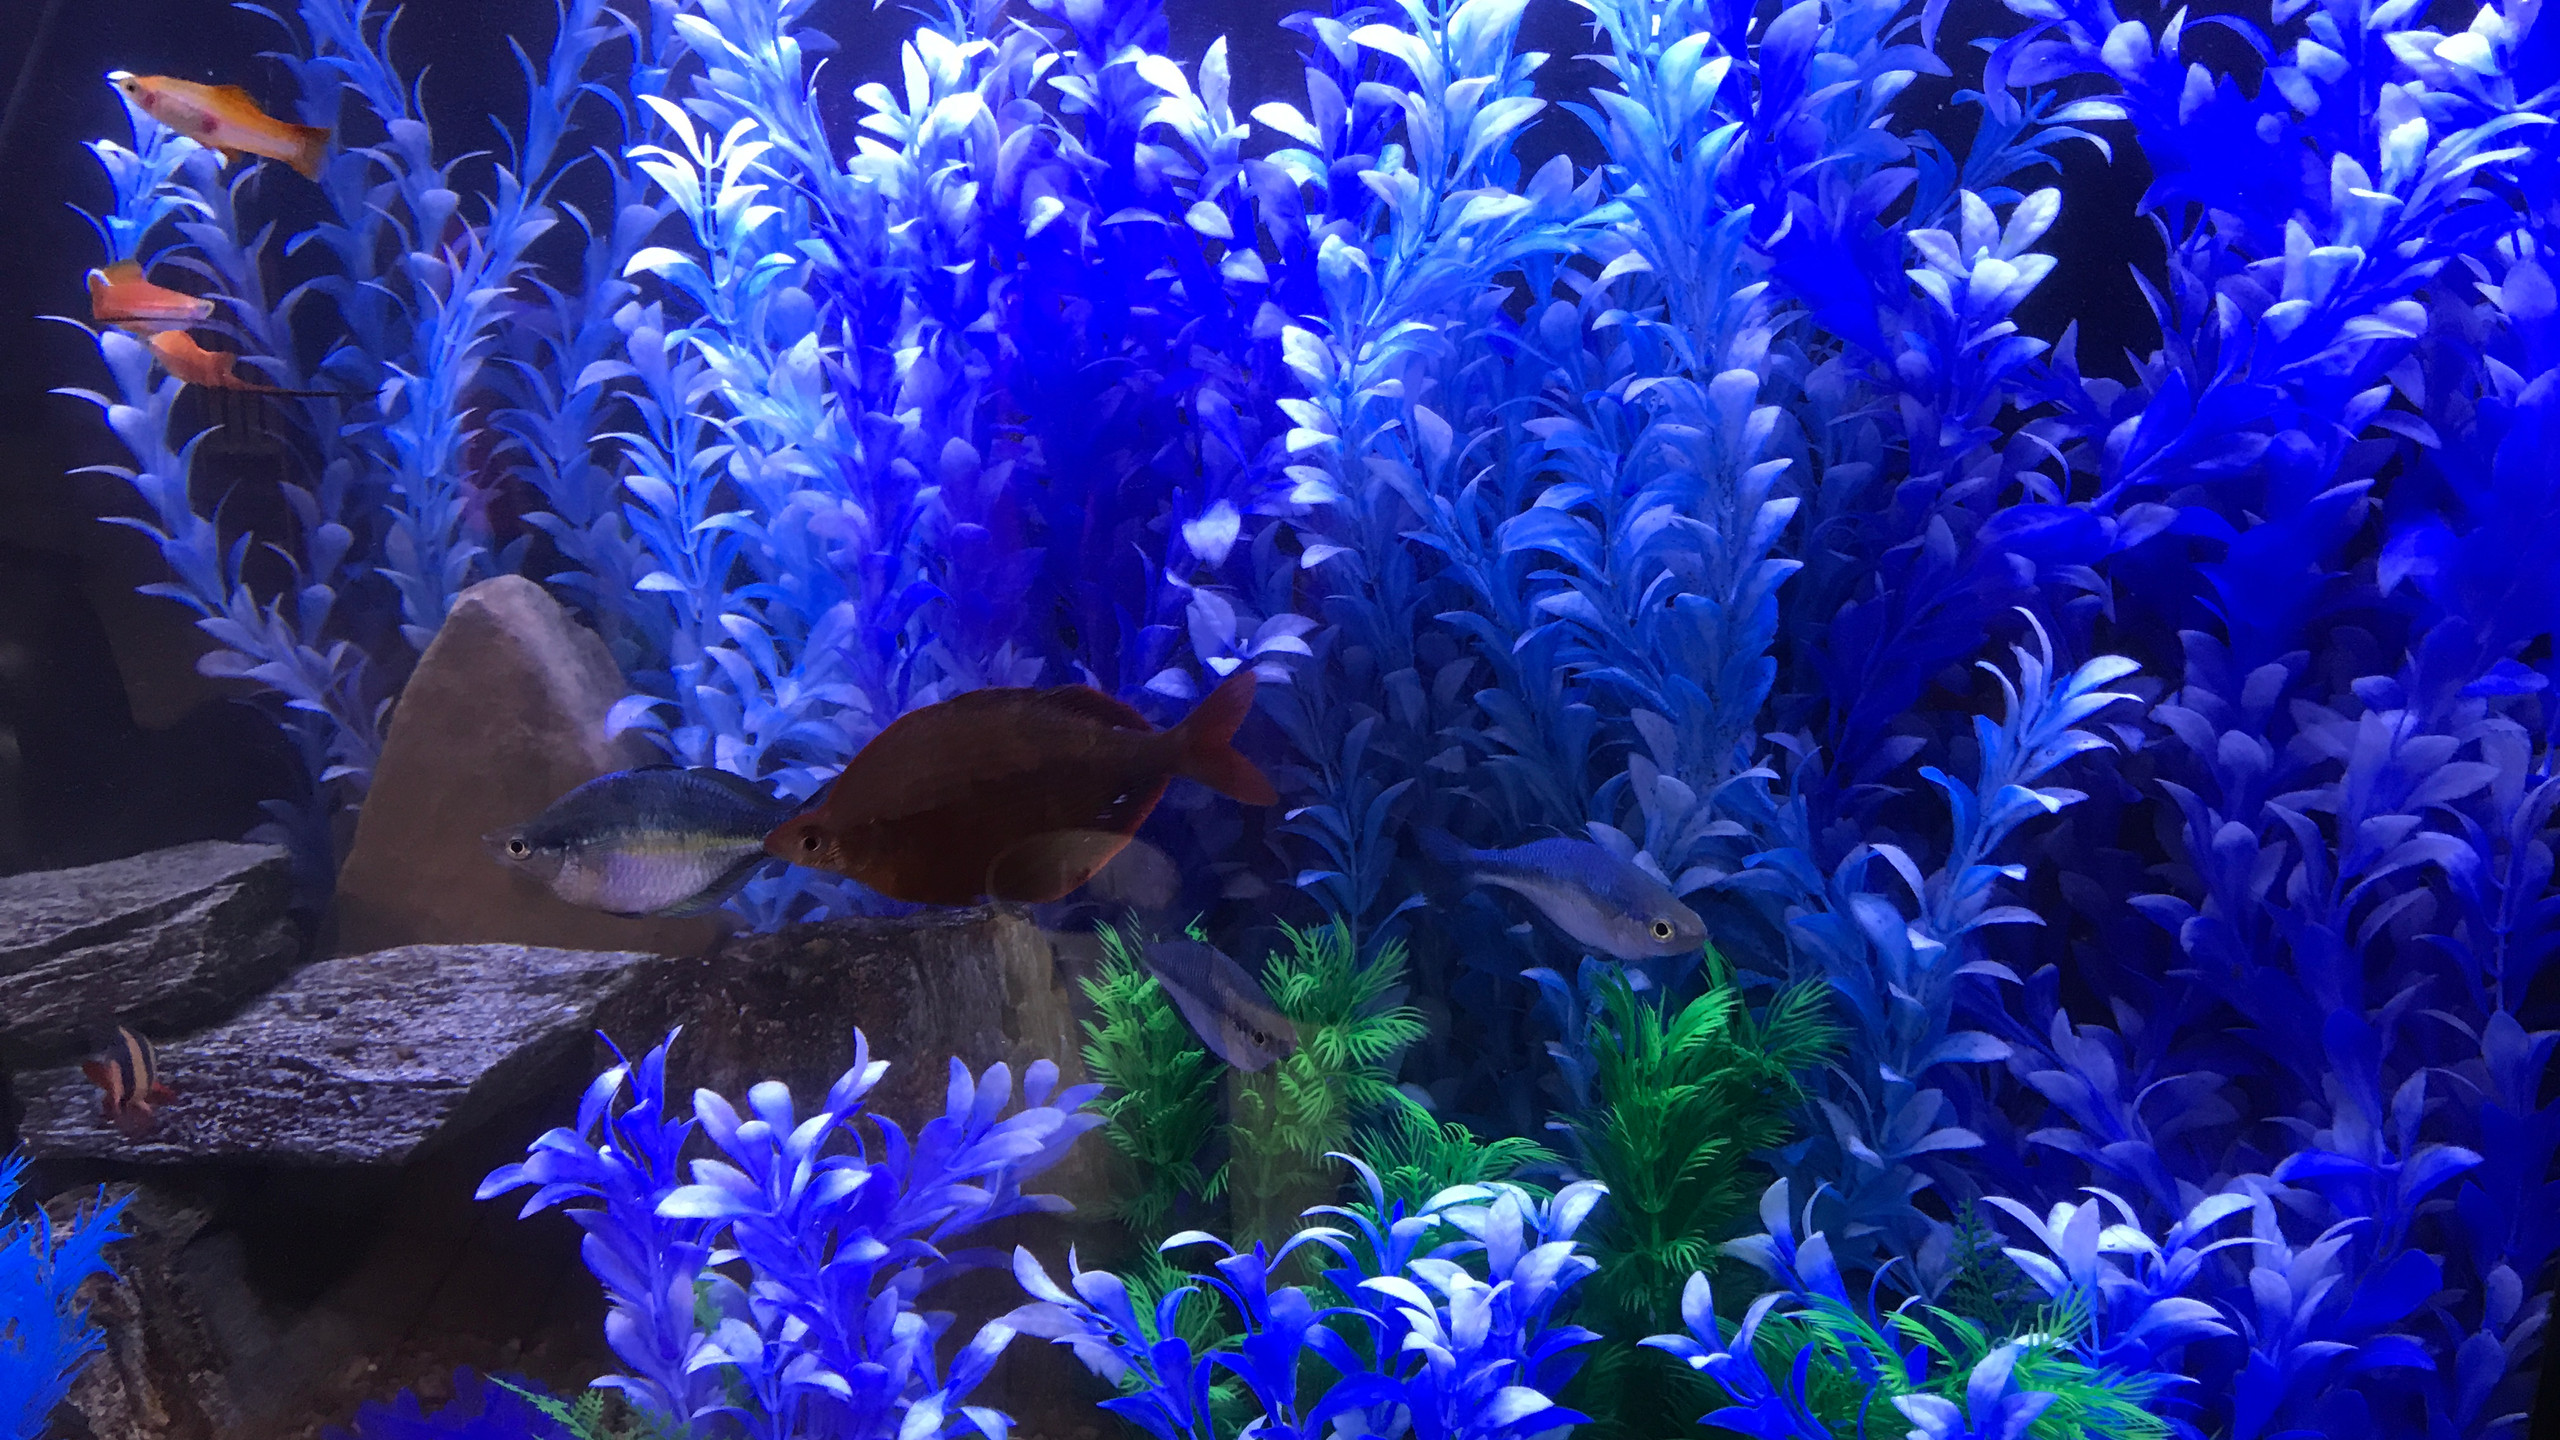 6-Fish Show Their Fan Colors